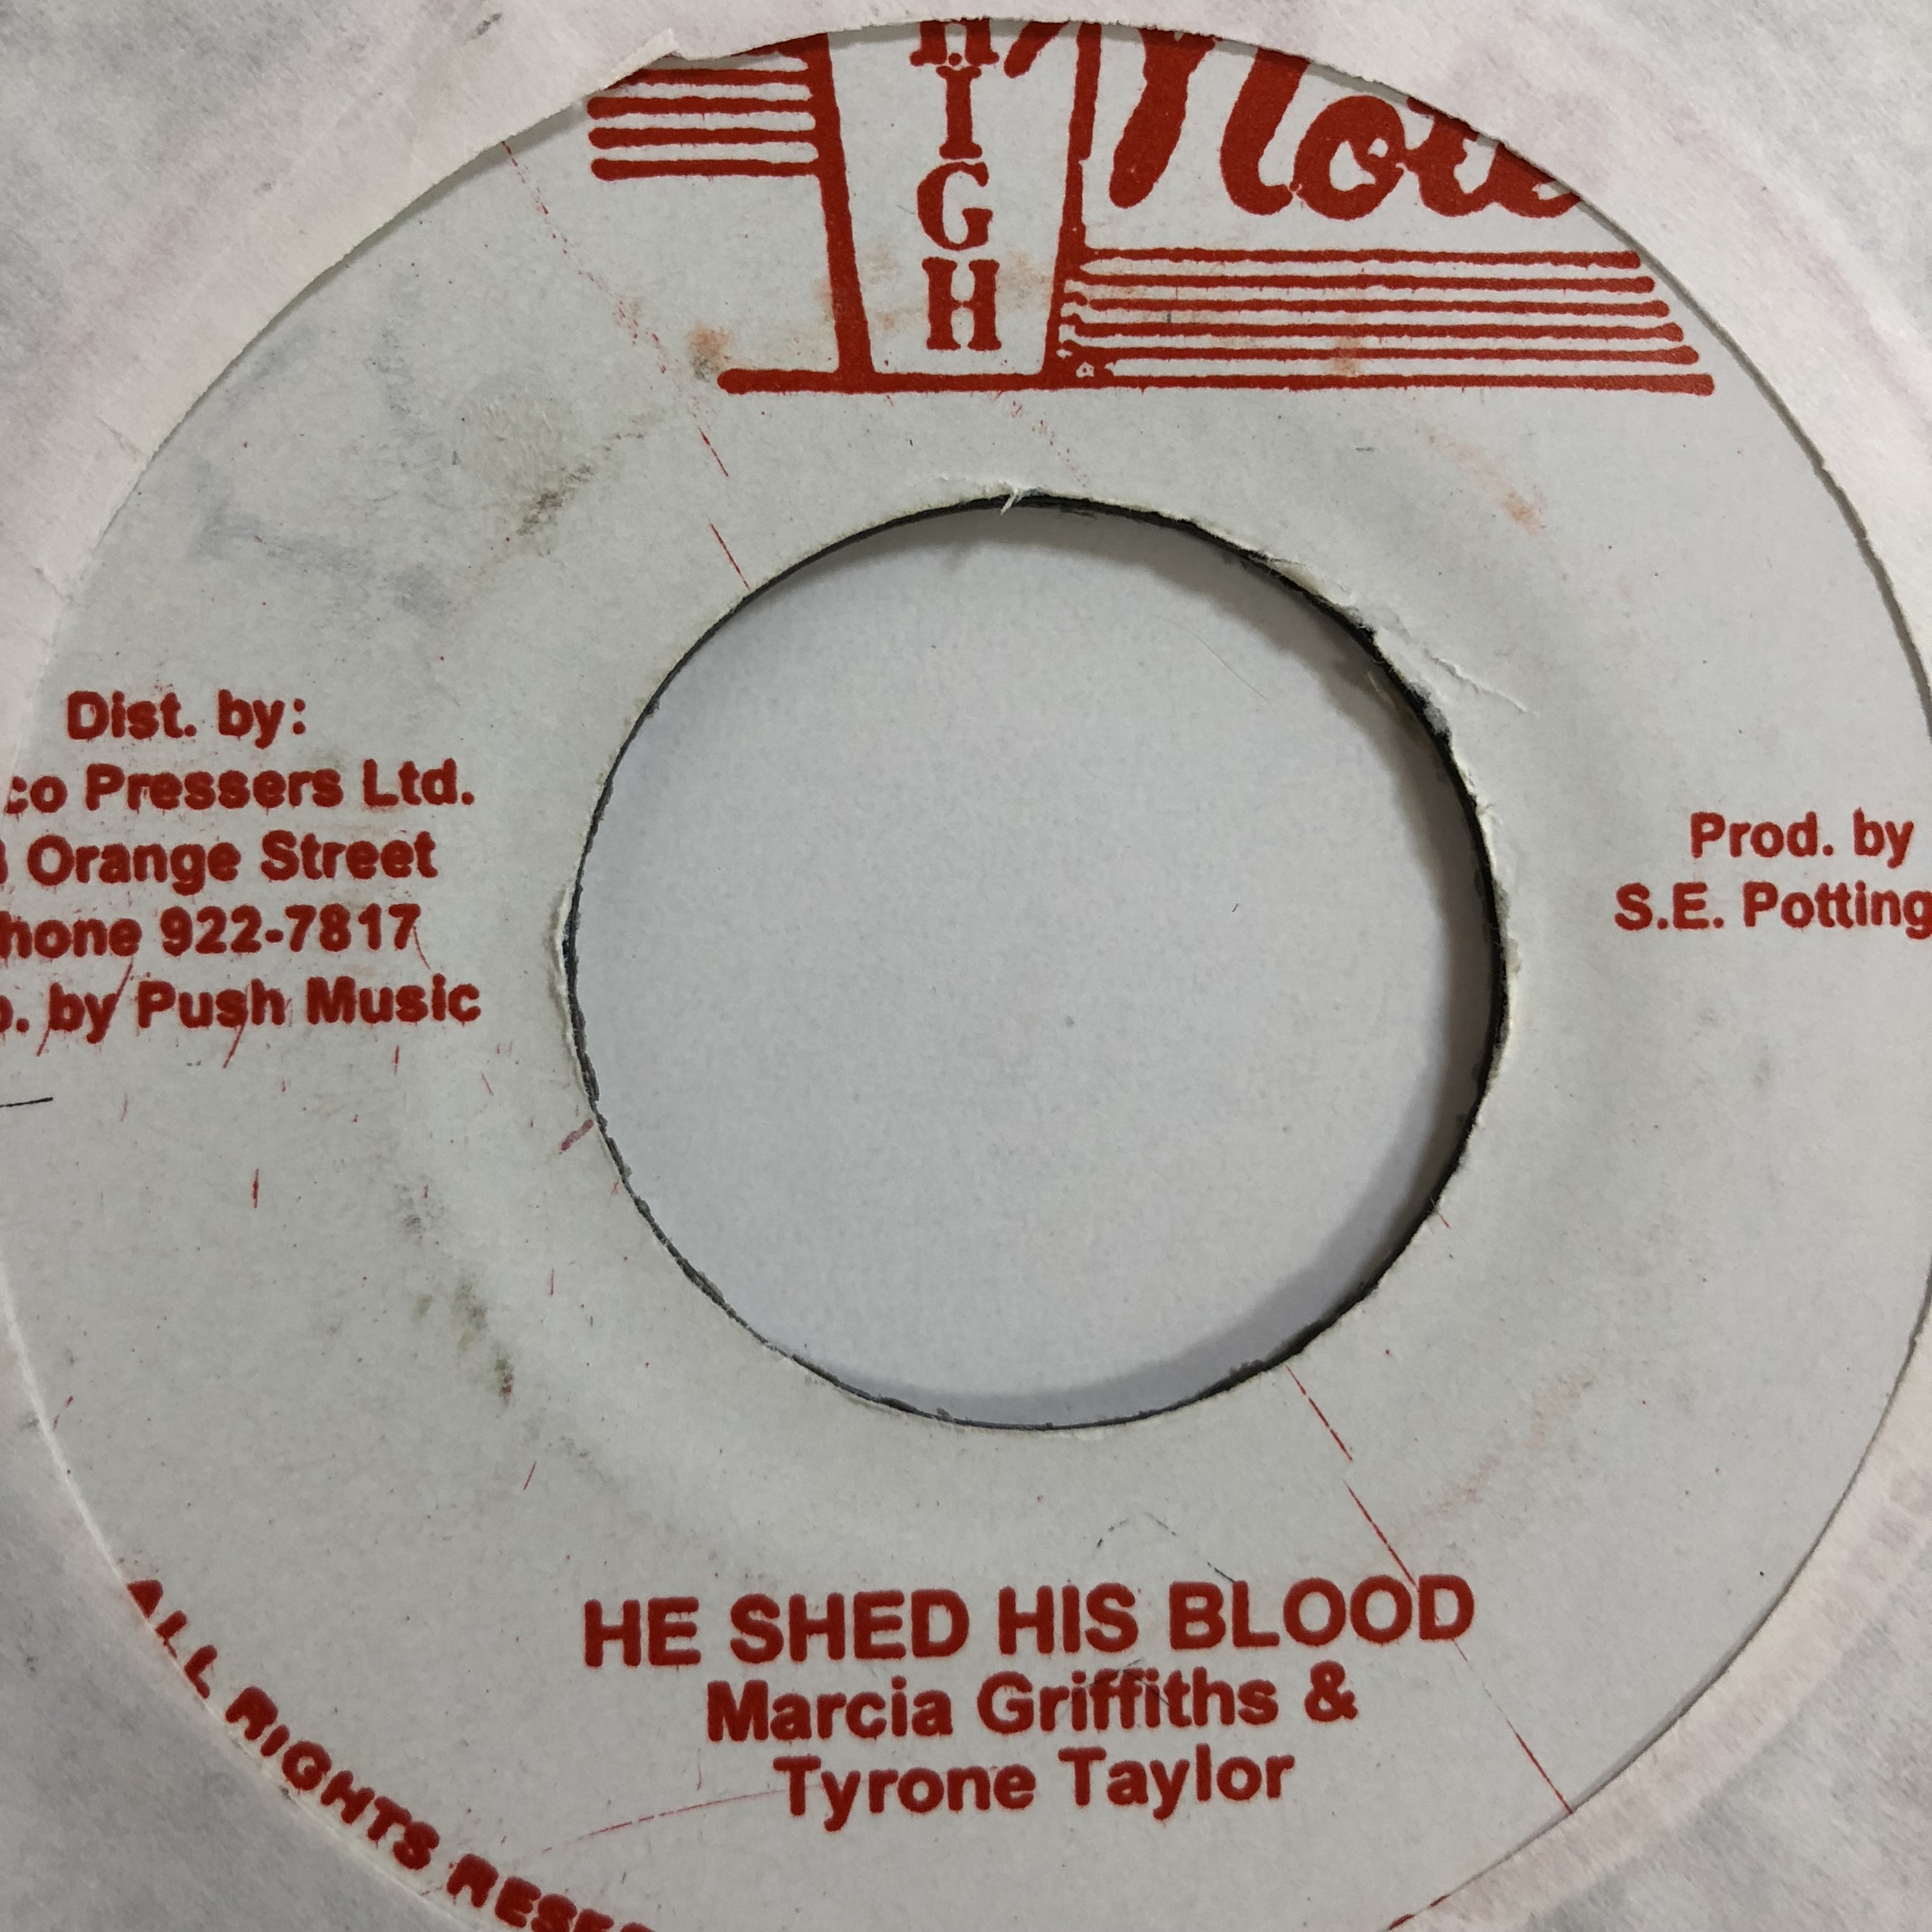 Marcia Griffiths(マーシャグリフィス) & Tyrone Taylor(タイロンテイラー) - He Shed His Blood【7'】